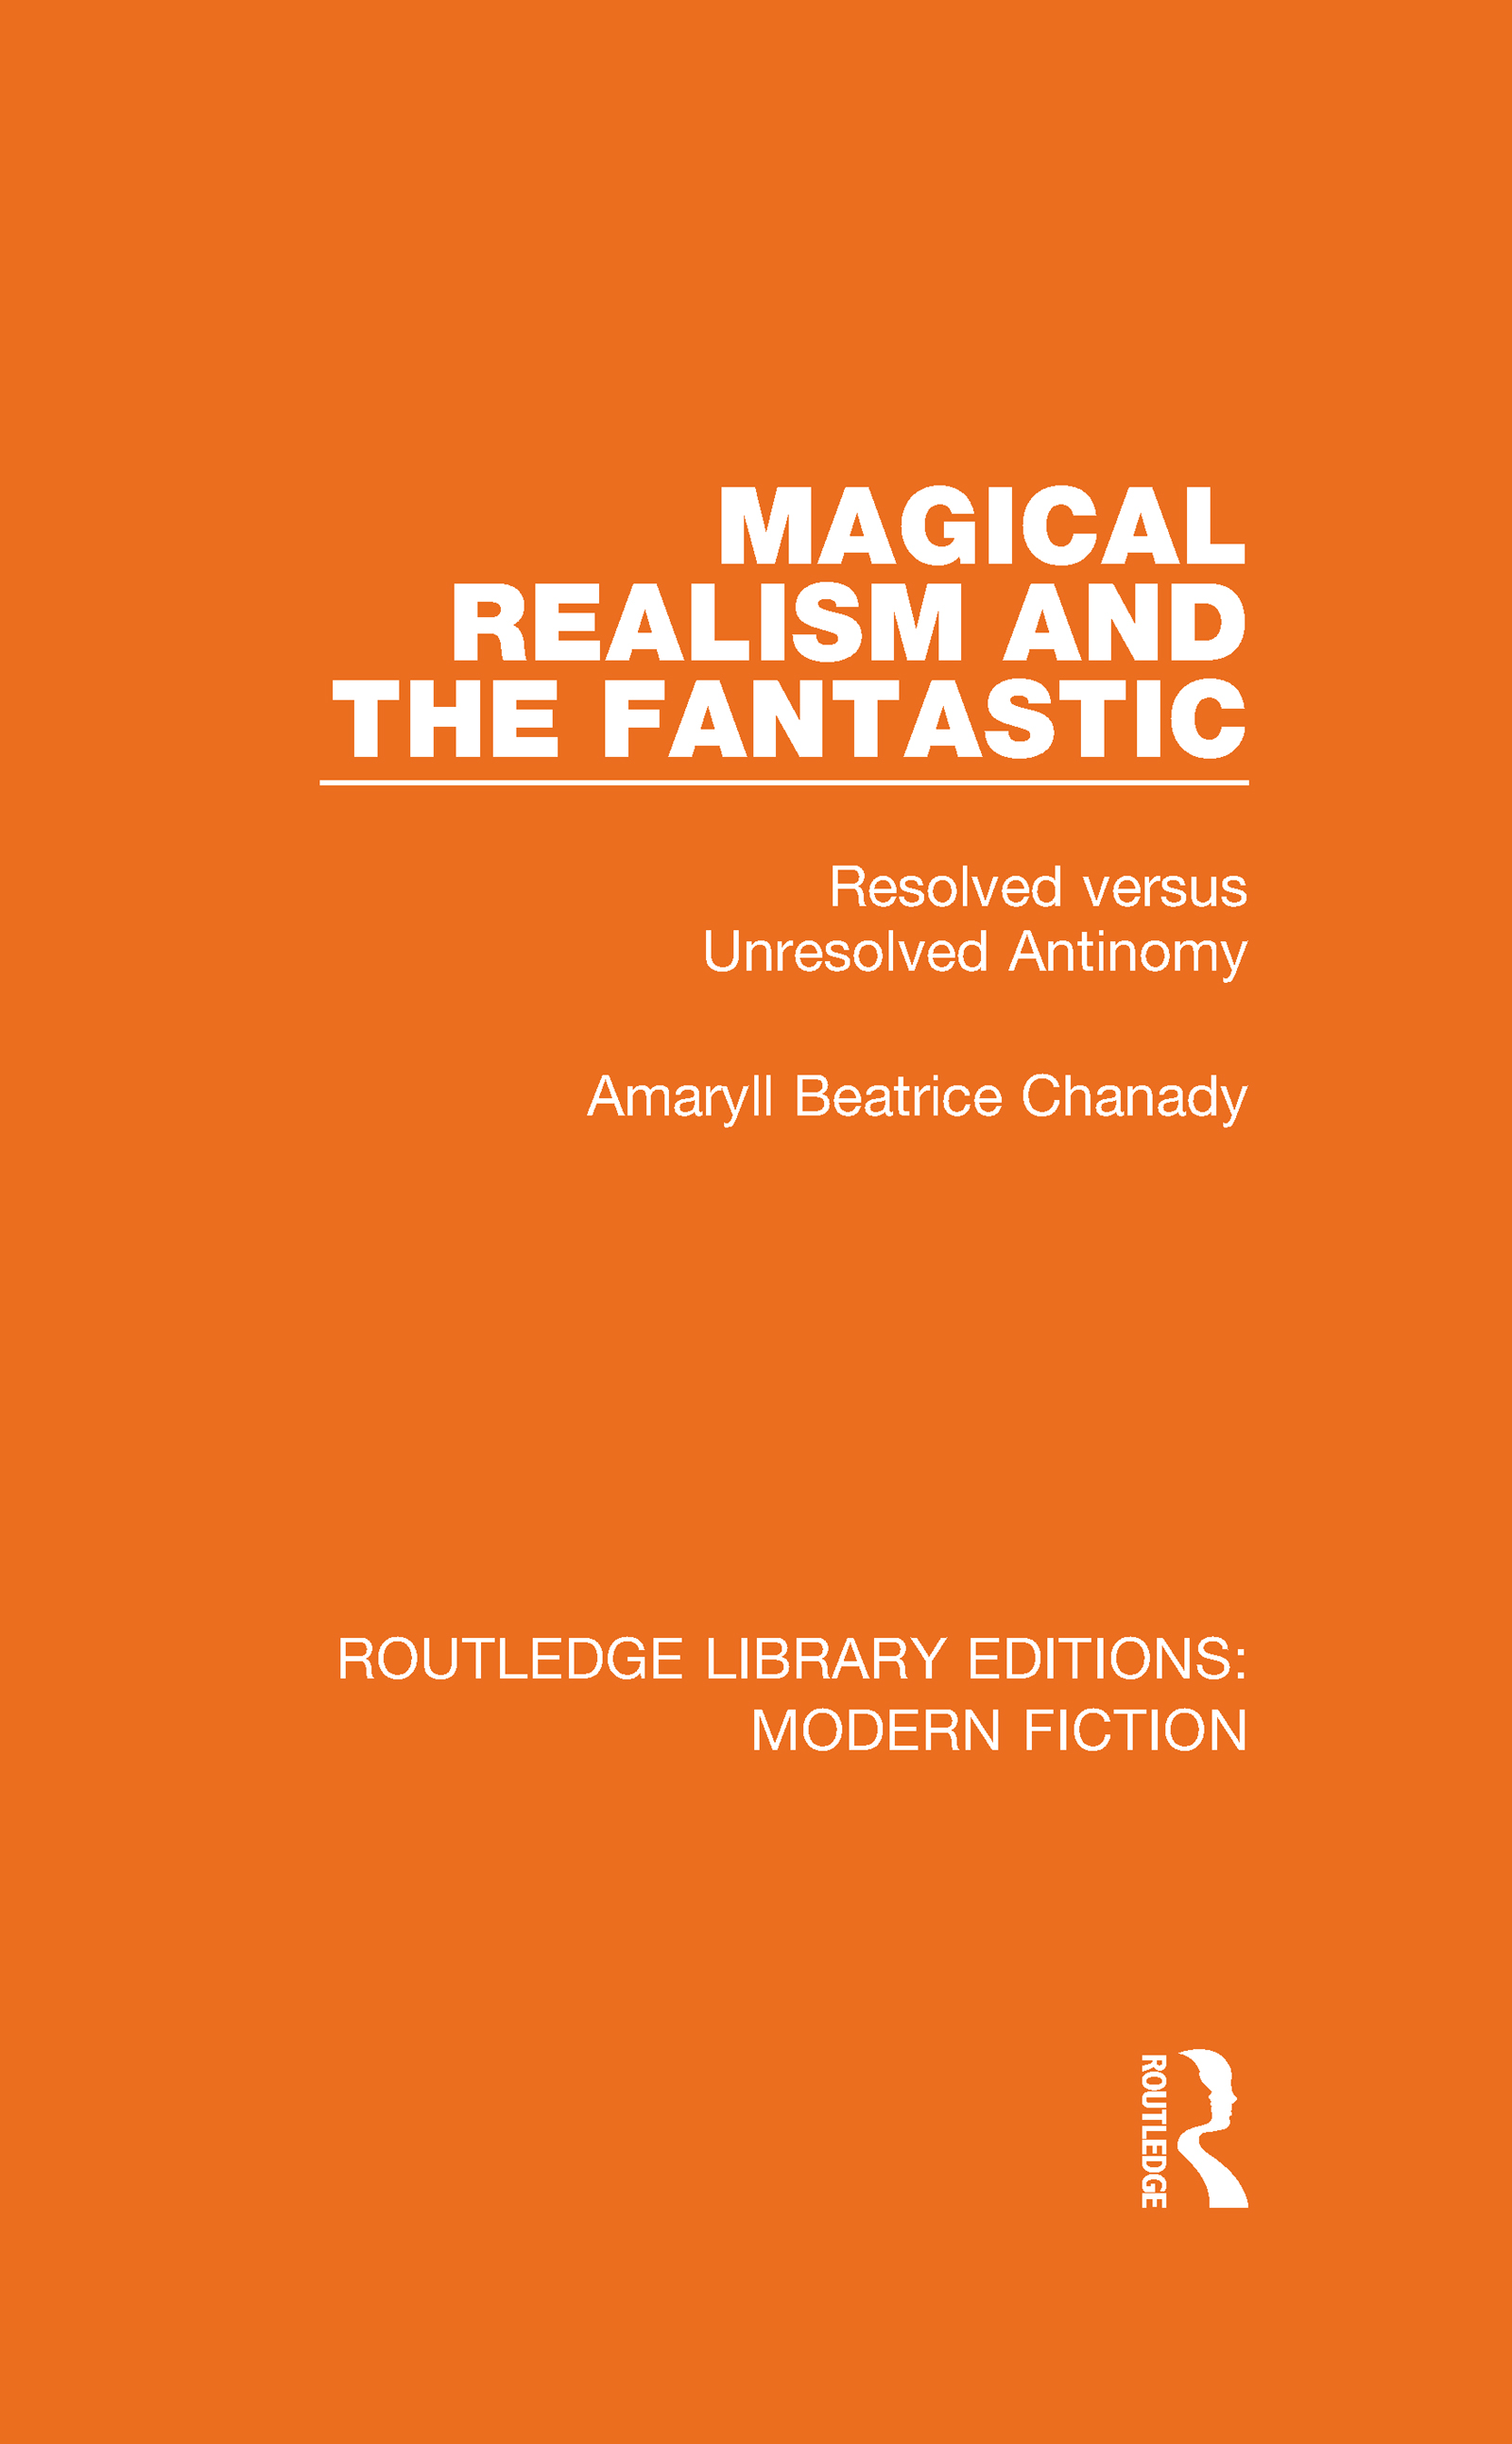 Magical Realism and the Fantastic